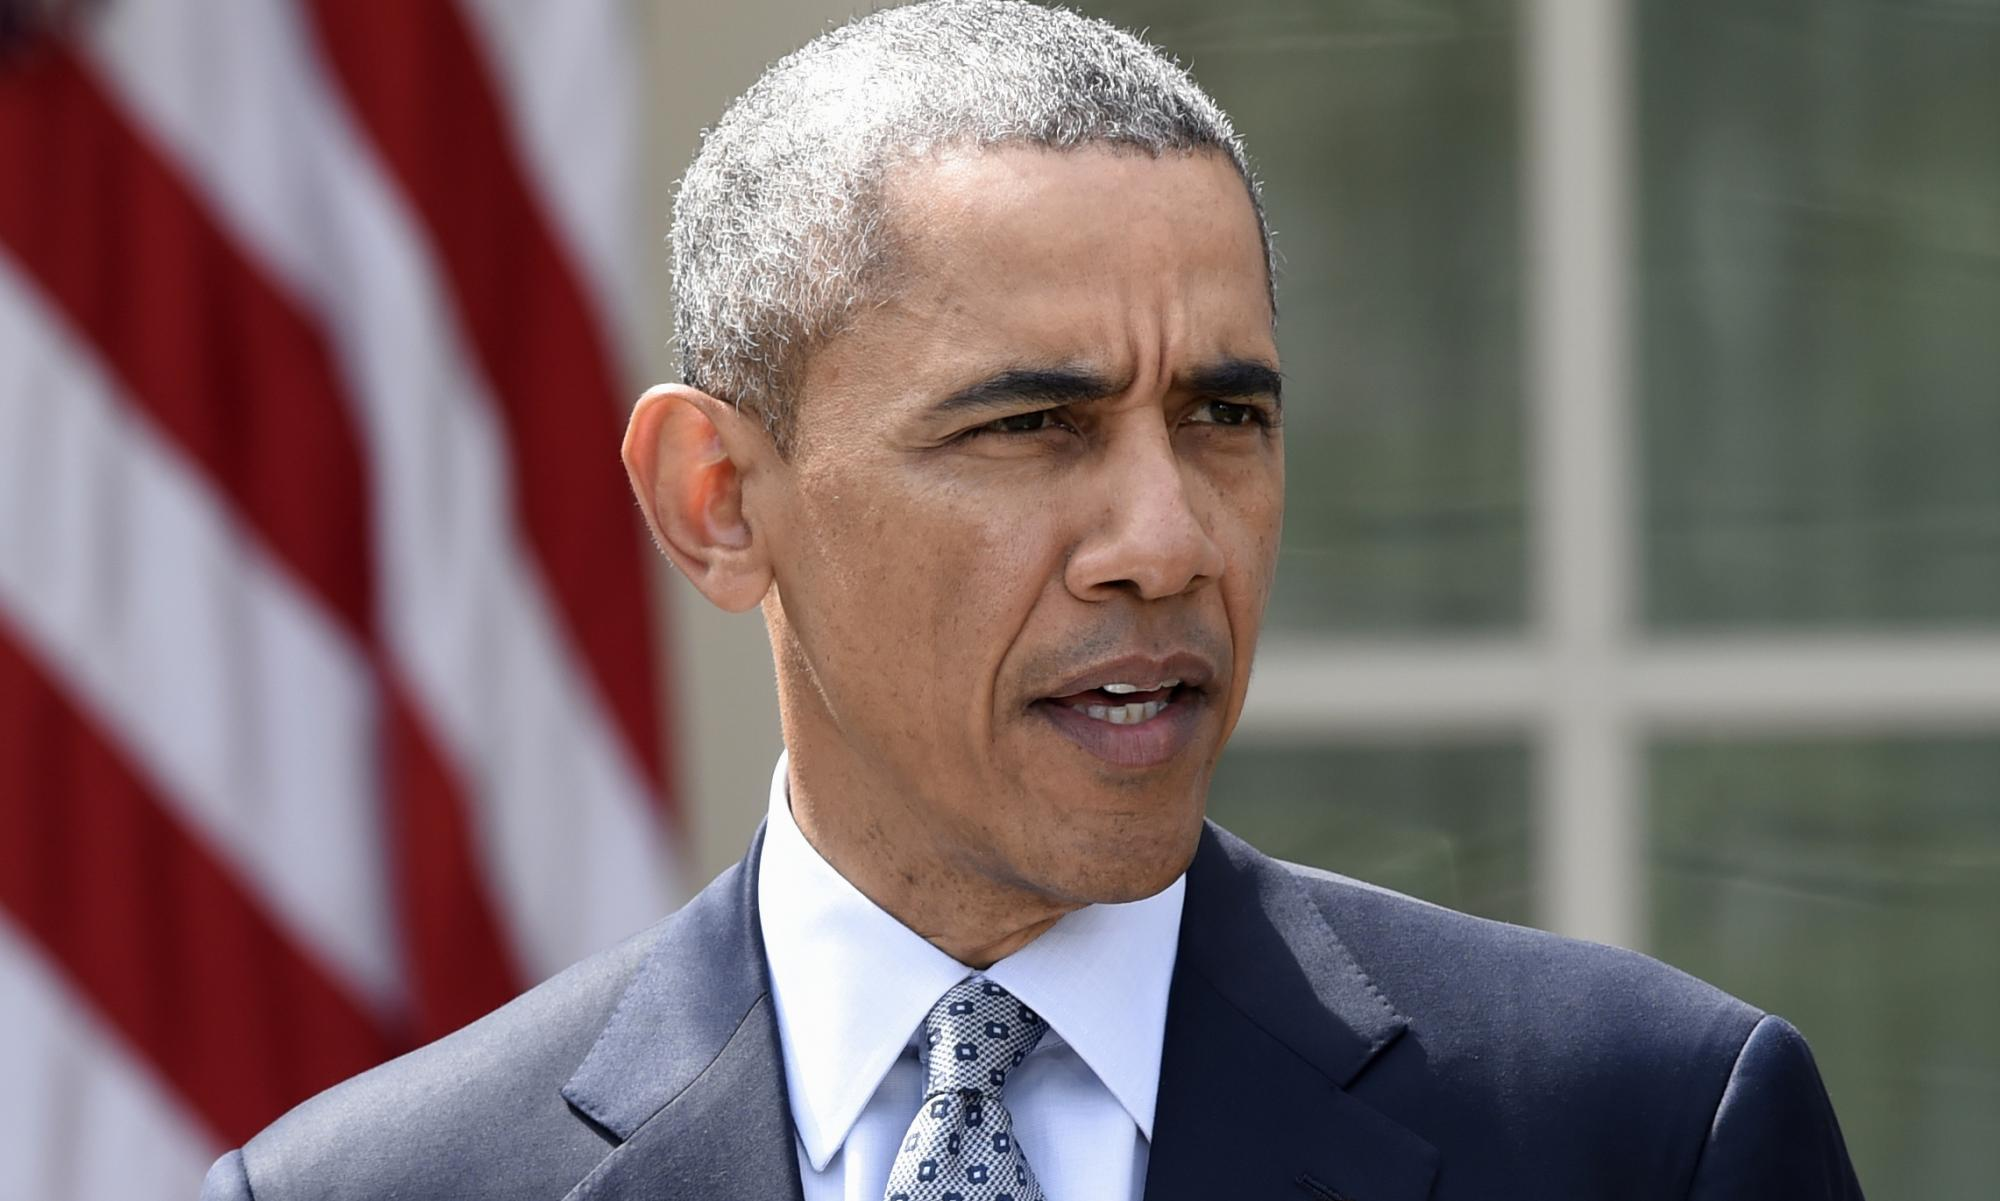 Barack Obama fights back against Israeli critics of Iran nuclear deal